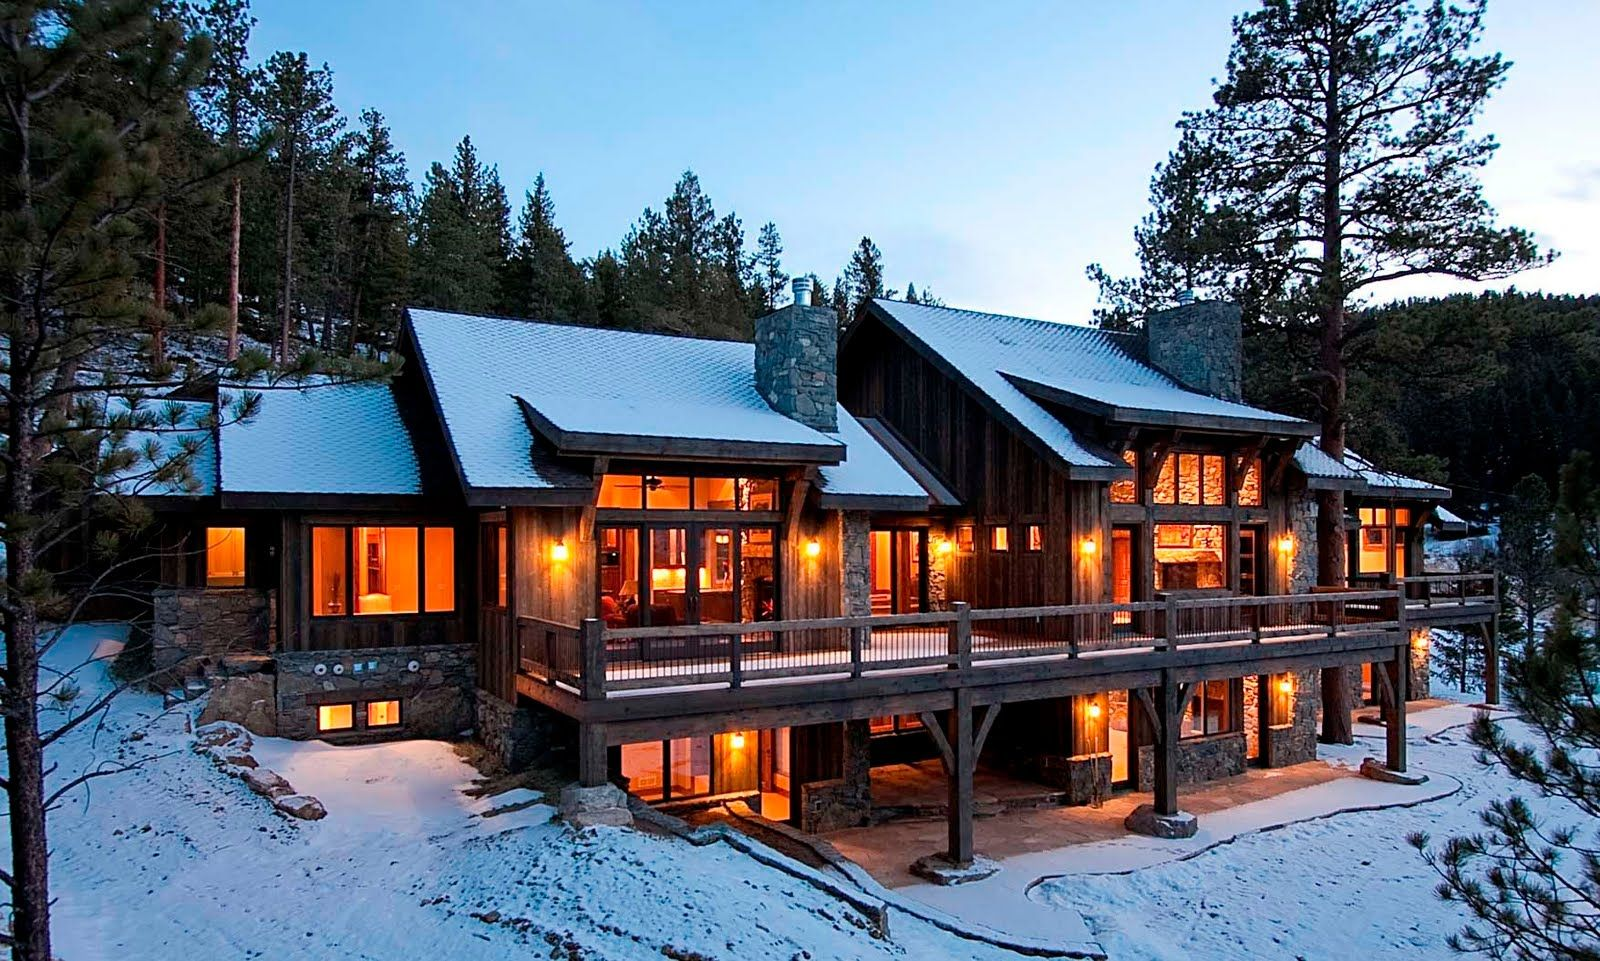 Tkp architects pc tkp design wins best in american living for Mountain modern architecture